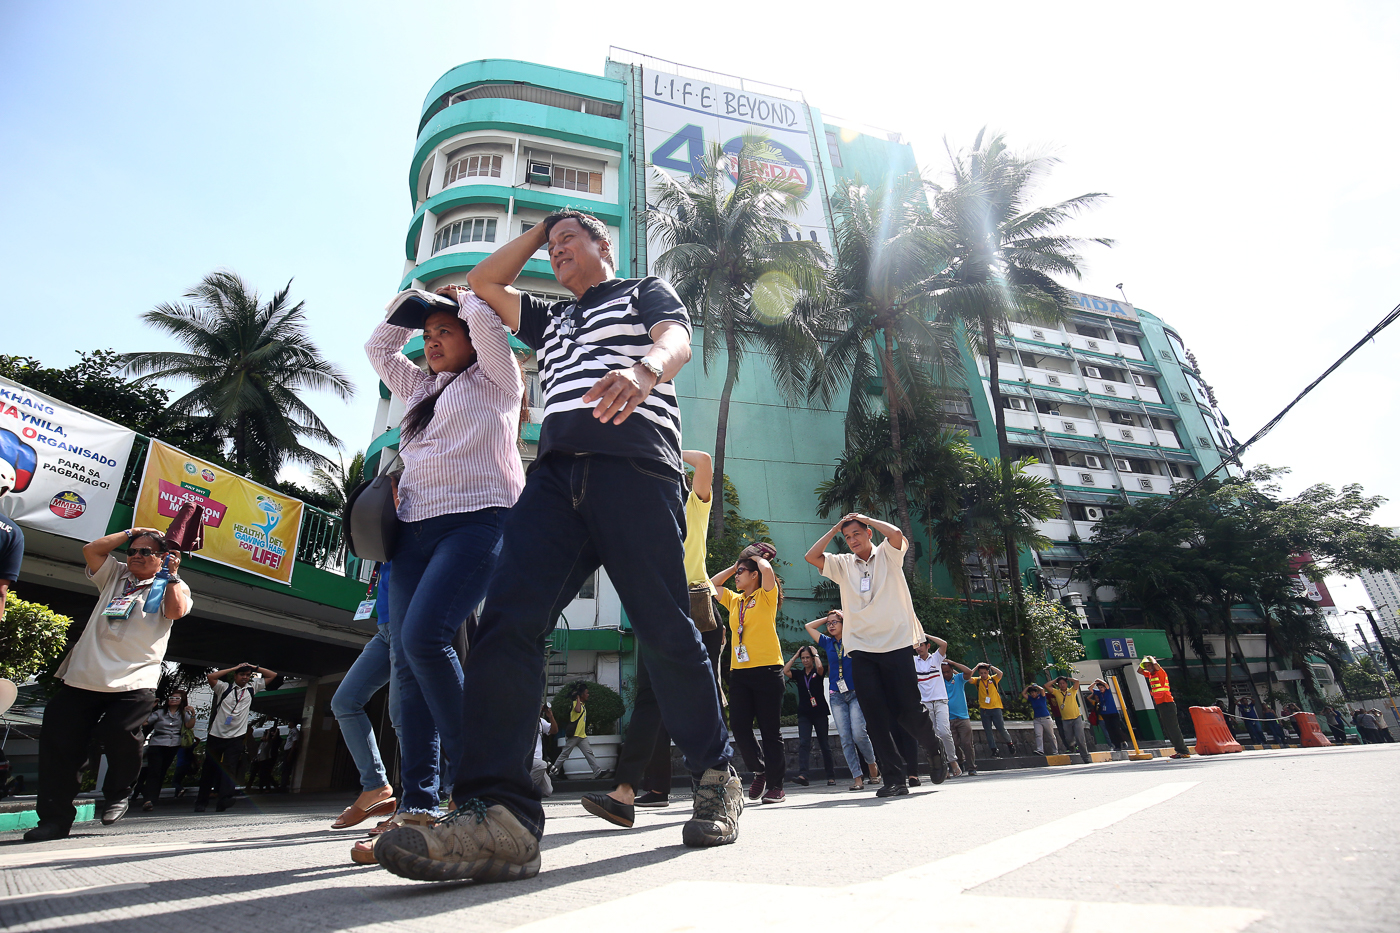 STAFF. MMDA employees cover their heads as they go out of the office. Photo by Ben Nabong/Rappler